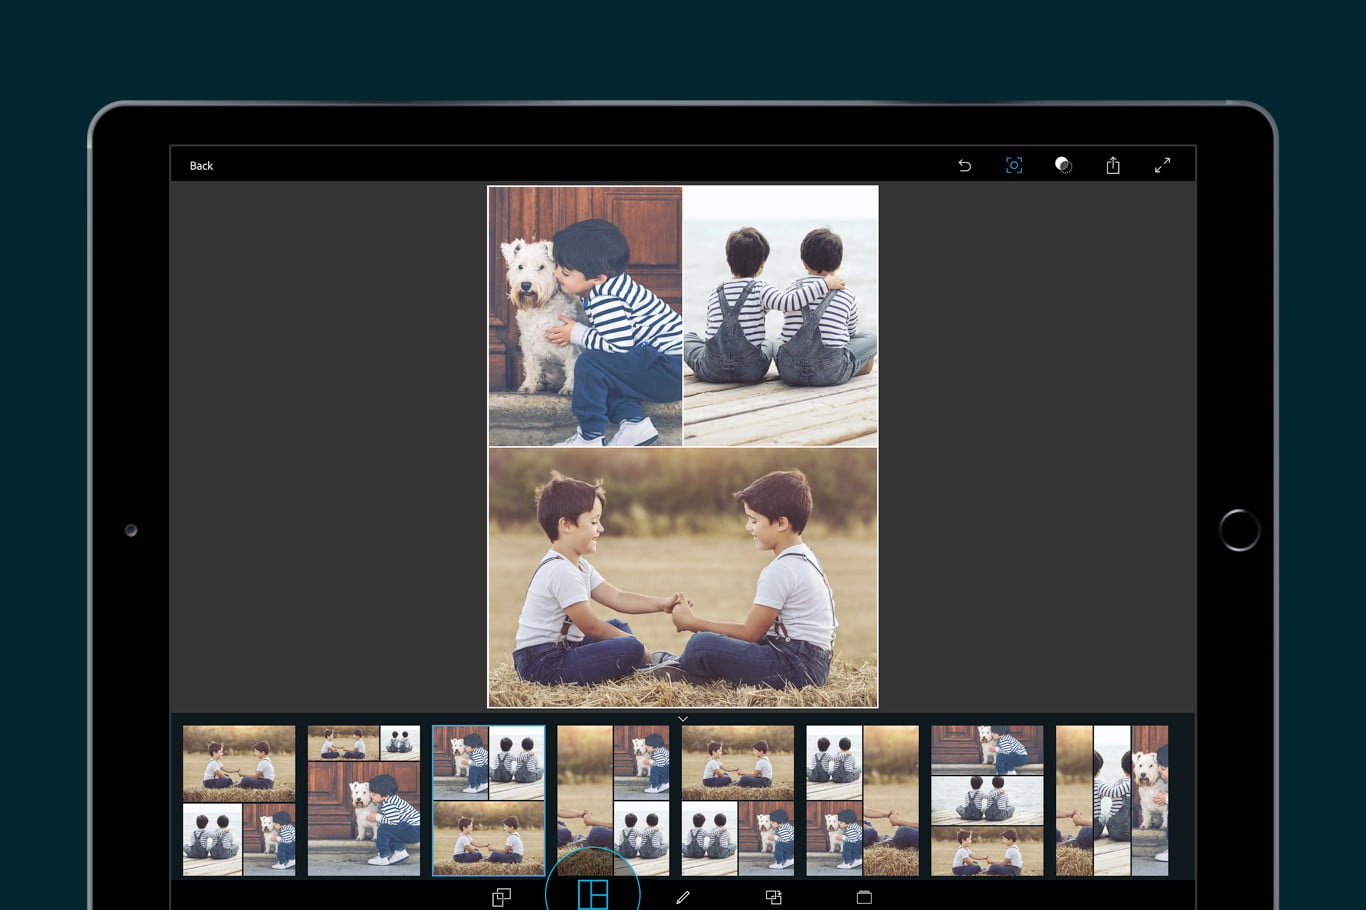 adobe lightroom android 22 raw support psx collages ipad copy